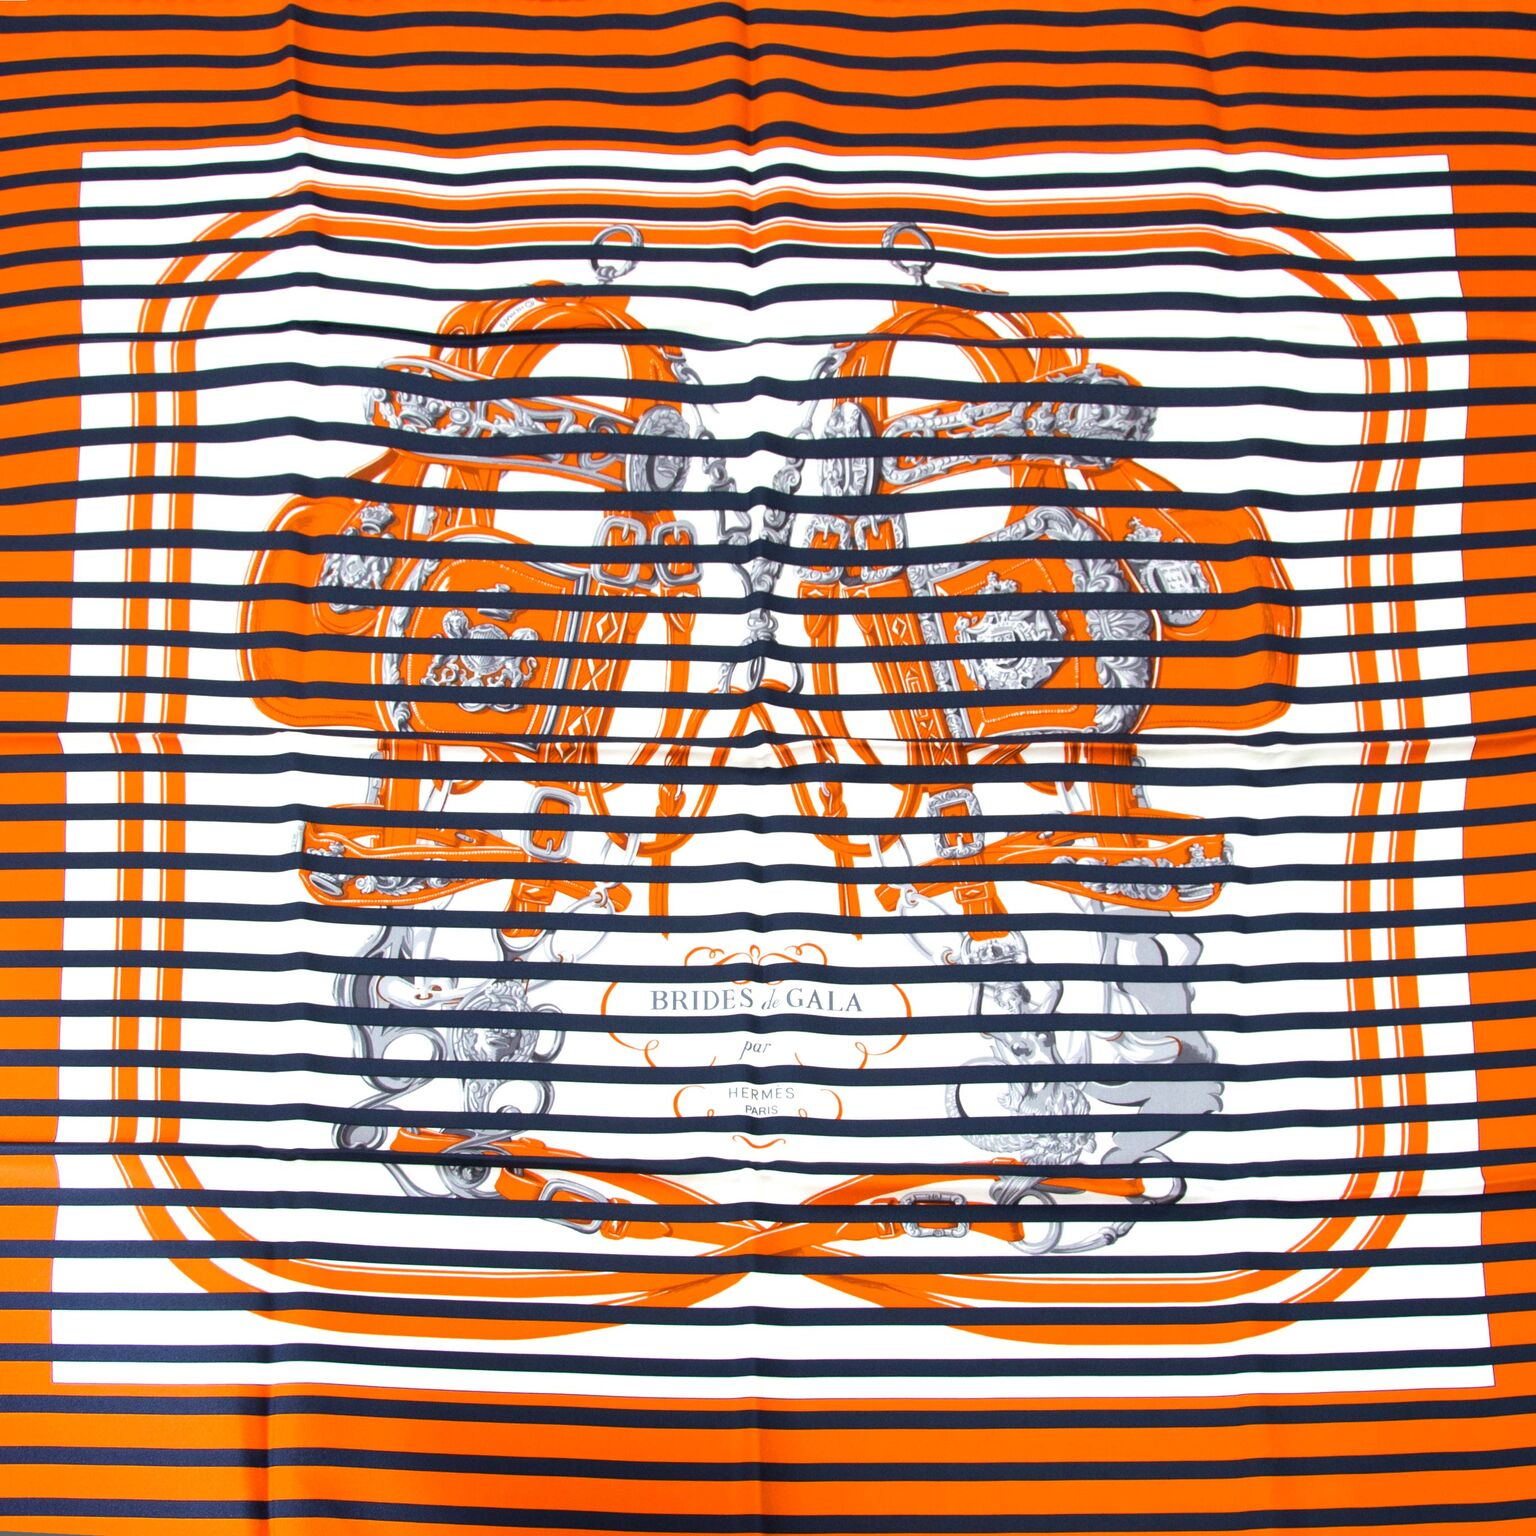 Beautifull hermes scarf with blue navy stripes